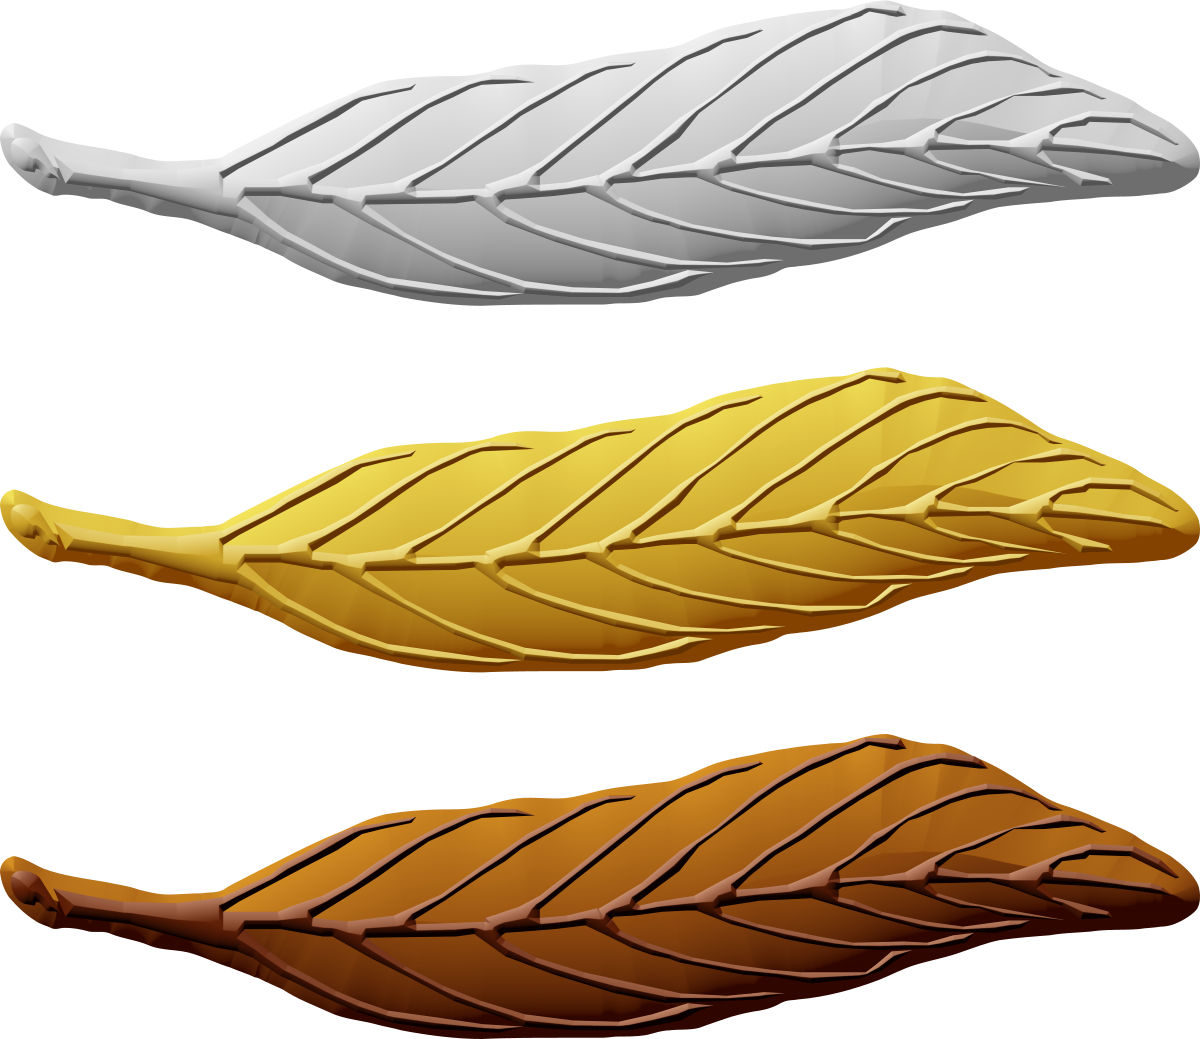 Rank requirements palms. Feathers clipart lightweight